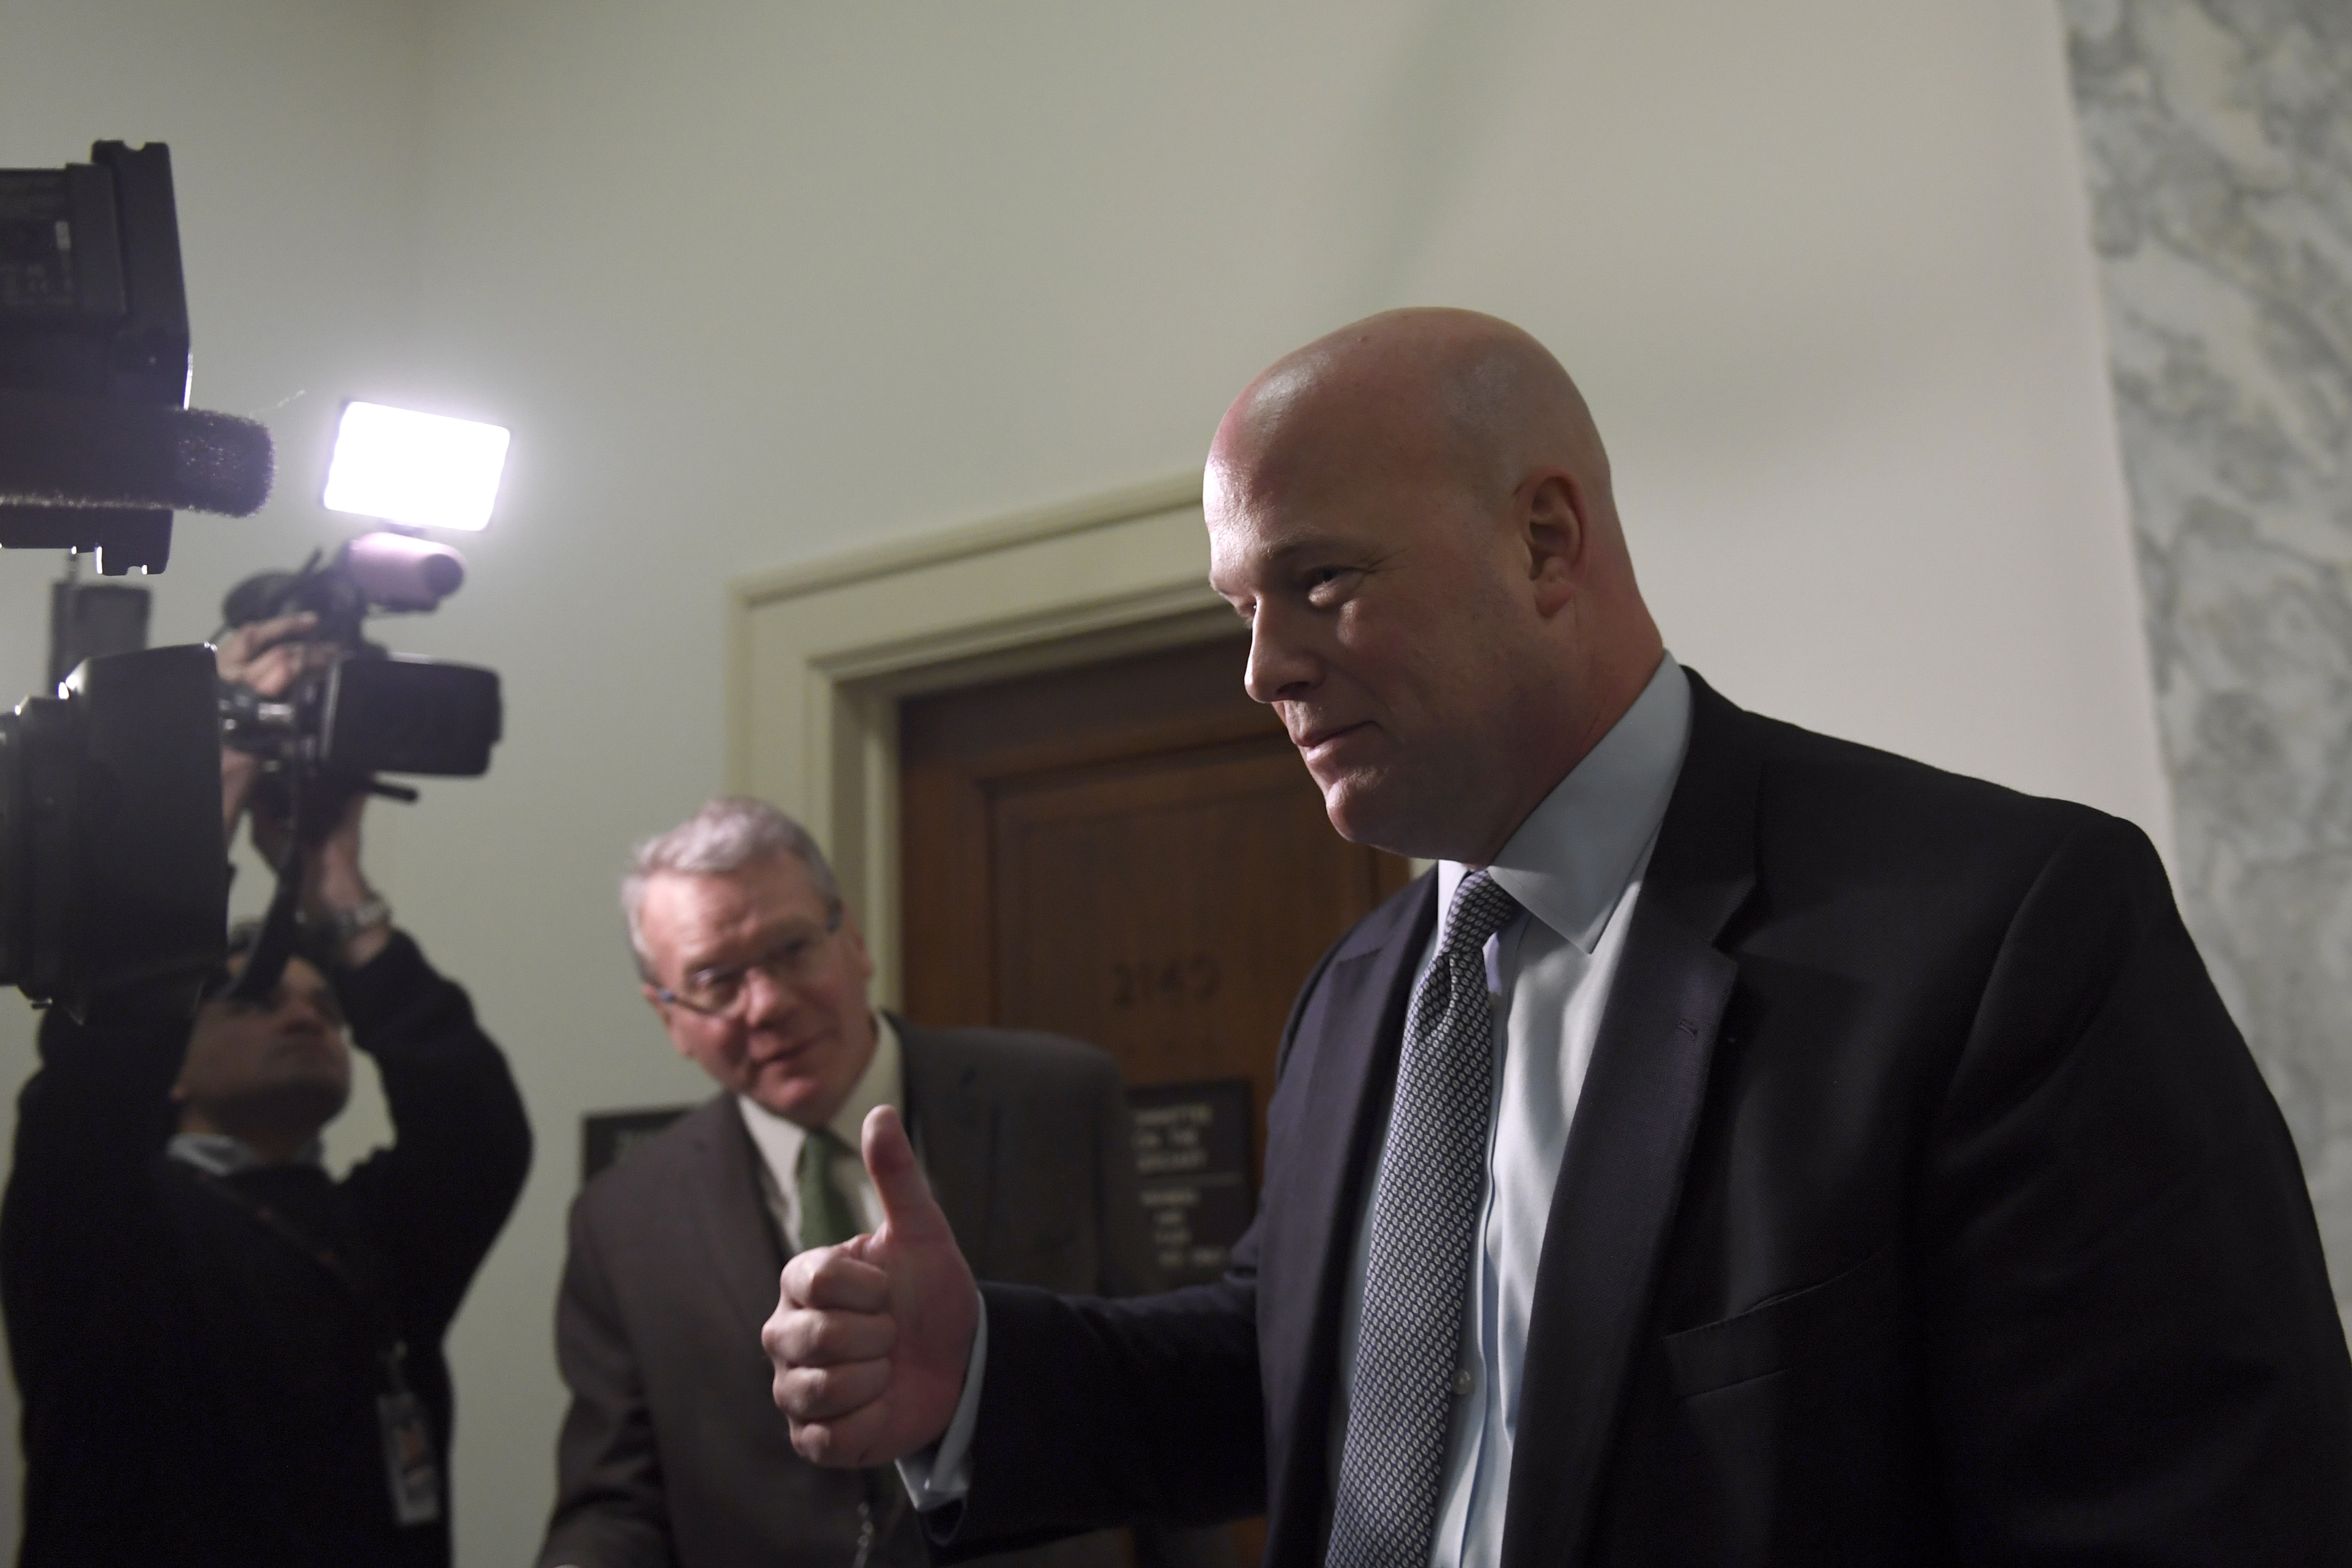 Matt Whitaker says he 's looking at a 'lot of interesting opportunities'